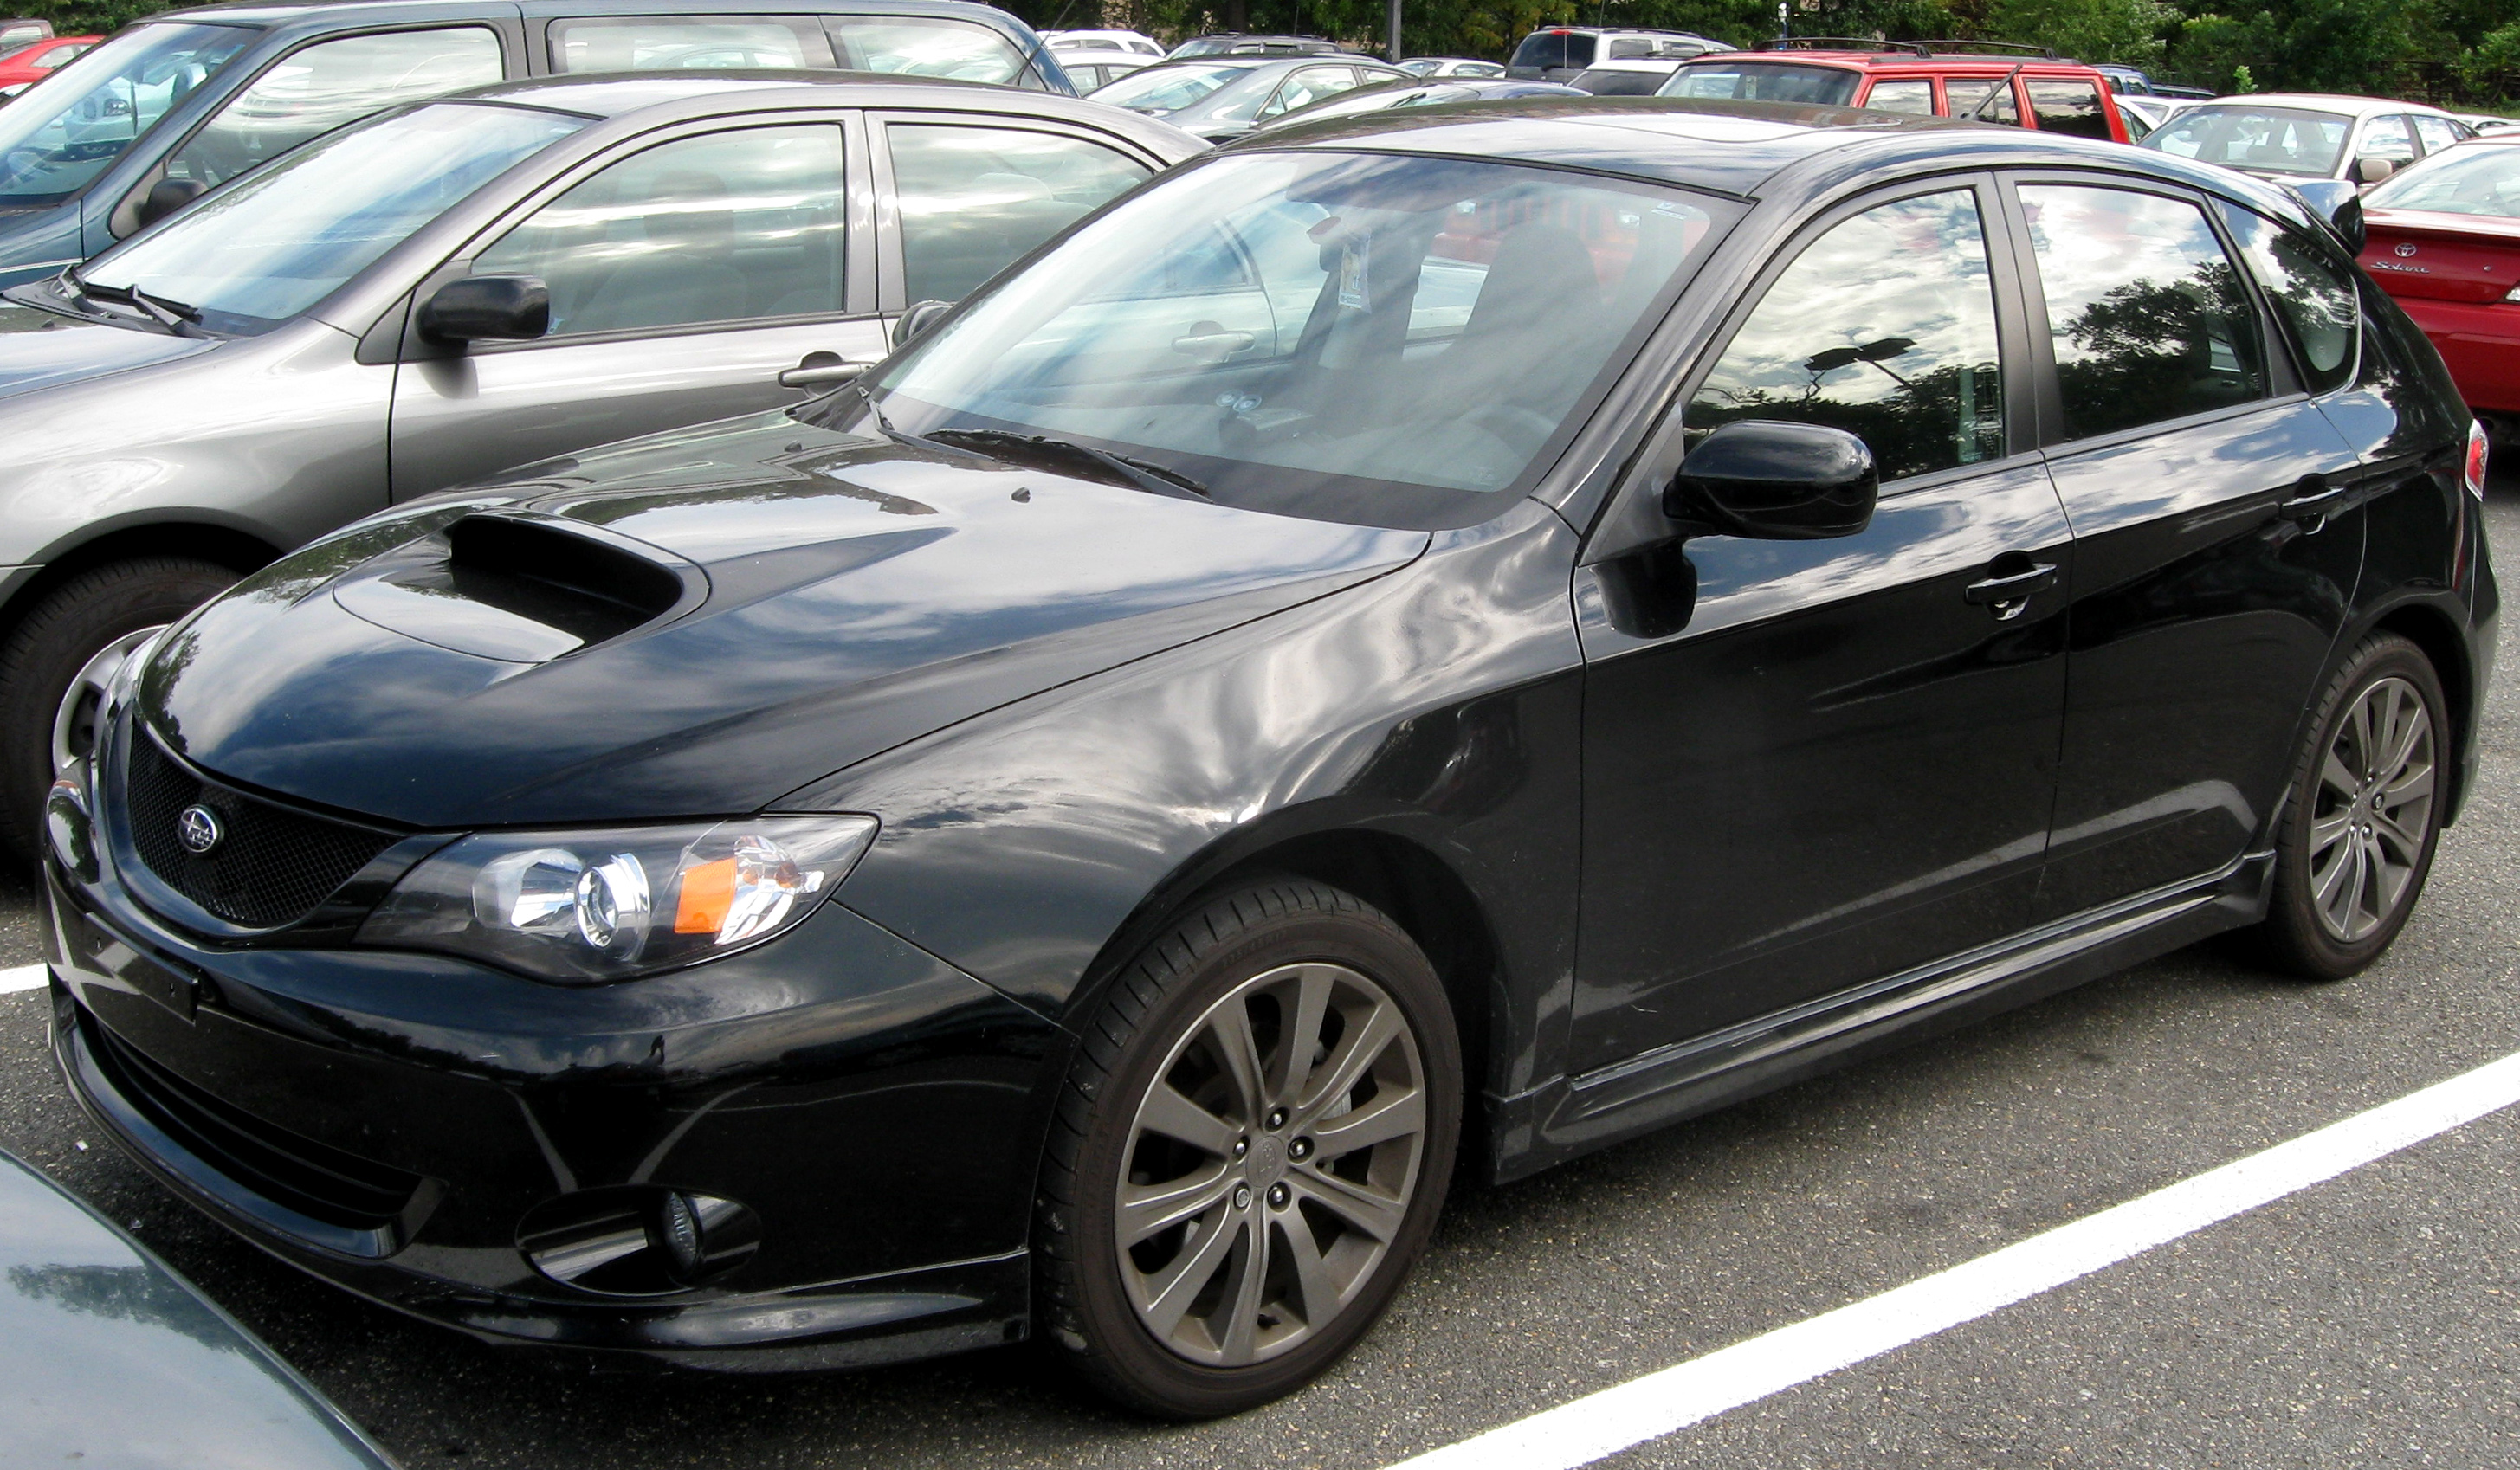 file 2009 subaru wrx hatchback 09 24. Black Bedroom Furniture Sets. Home Design Ideas